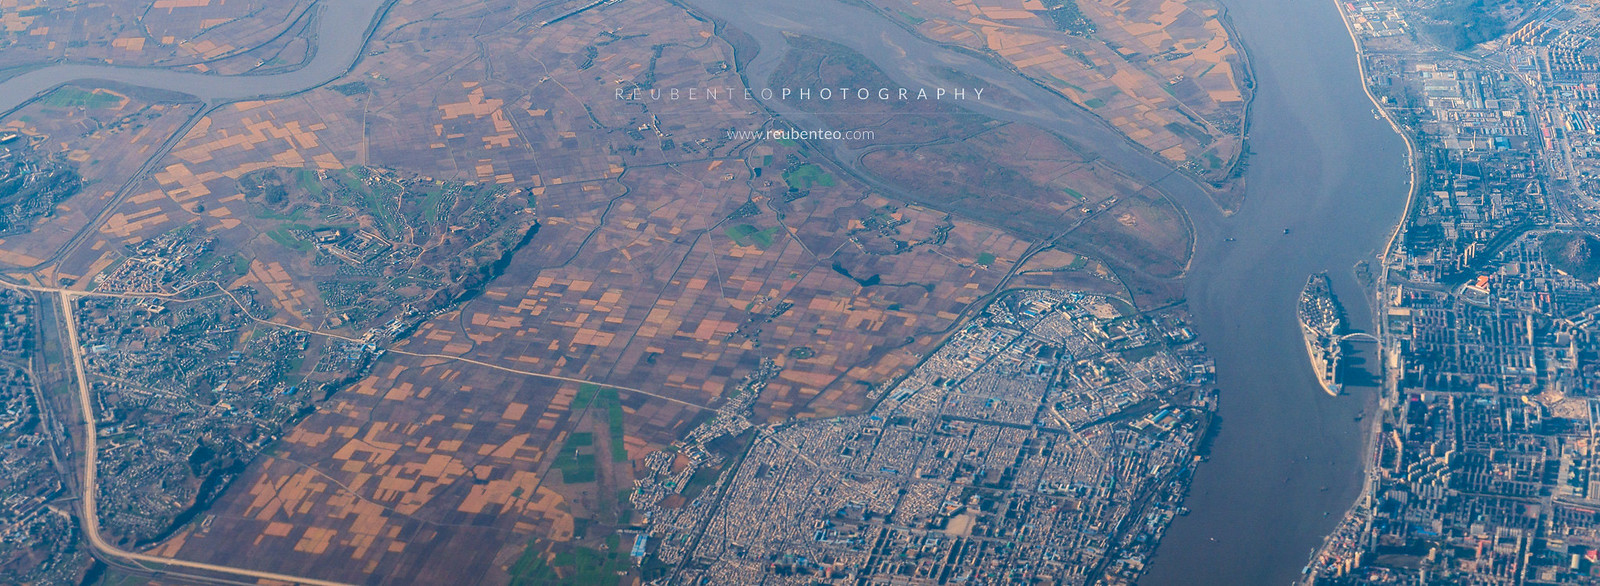 Aerial view of North Korea City and Countryside